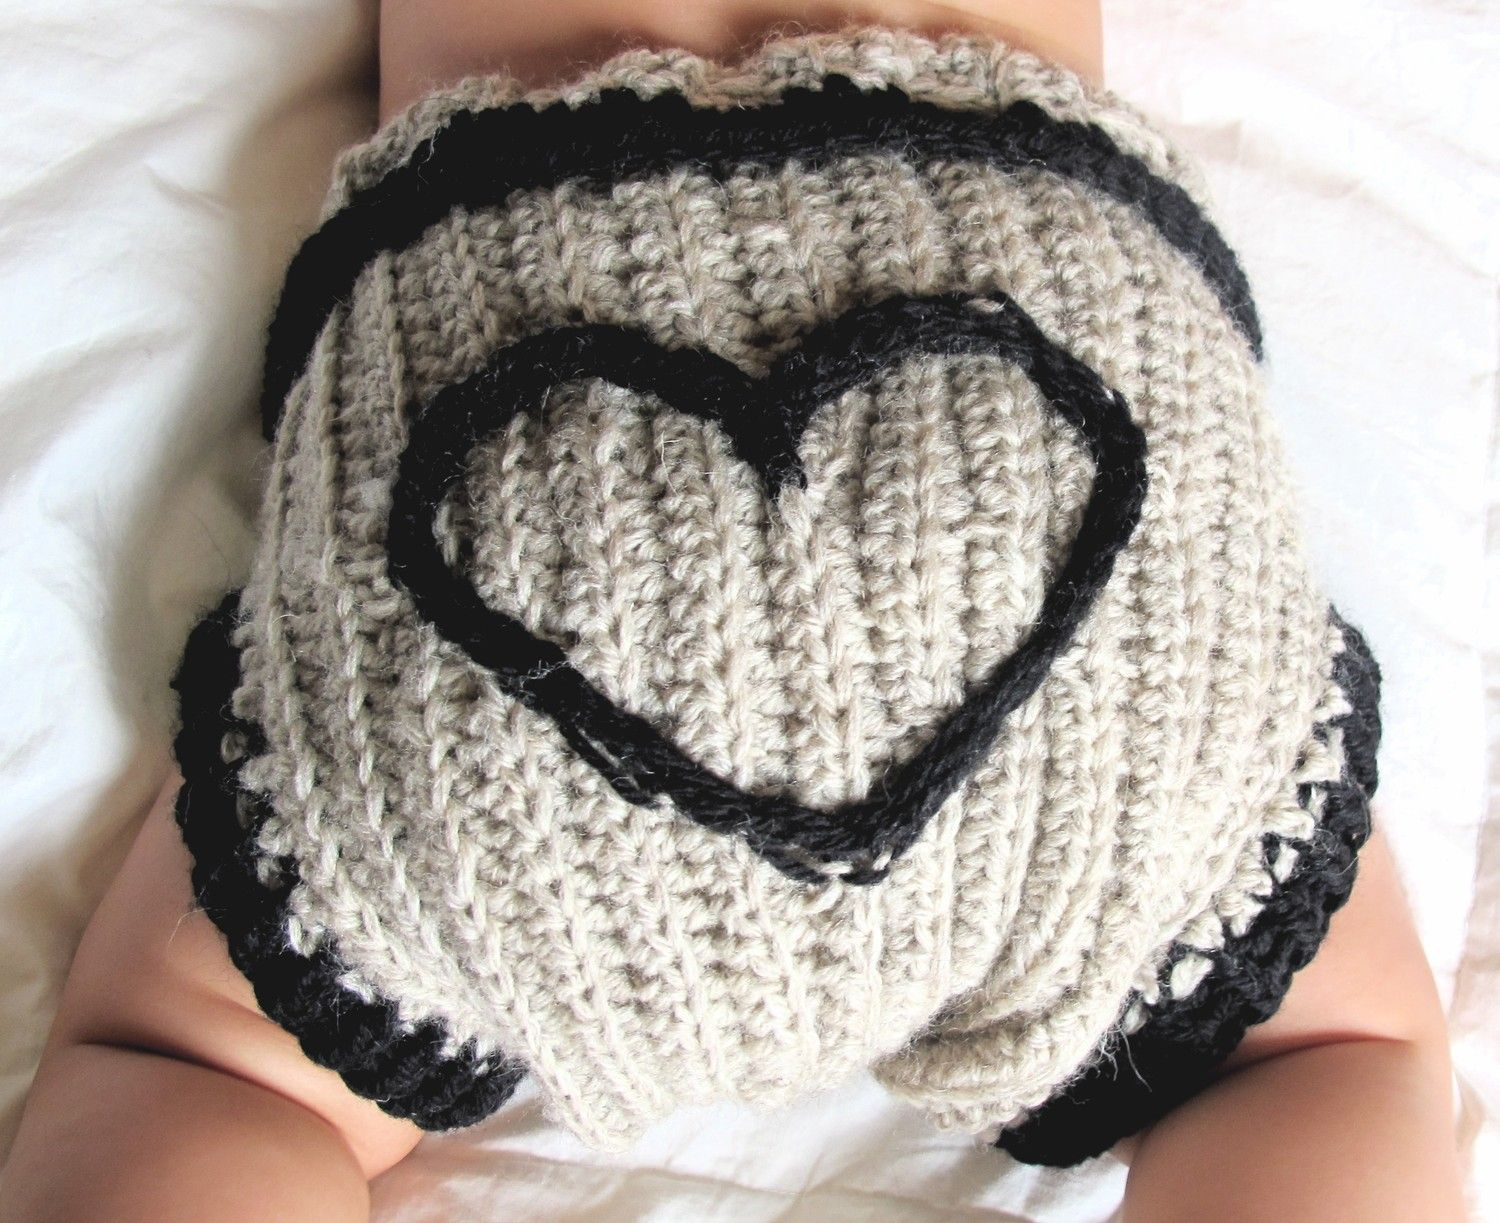 Hand-knit Wool Diaper Cover Pattern - Christa Dovel on HubPages ...